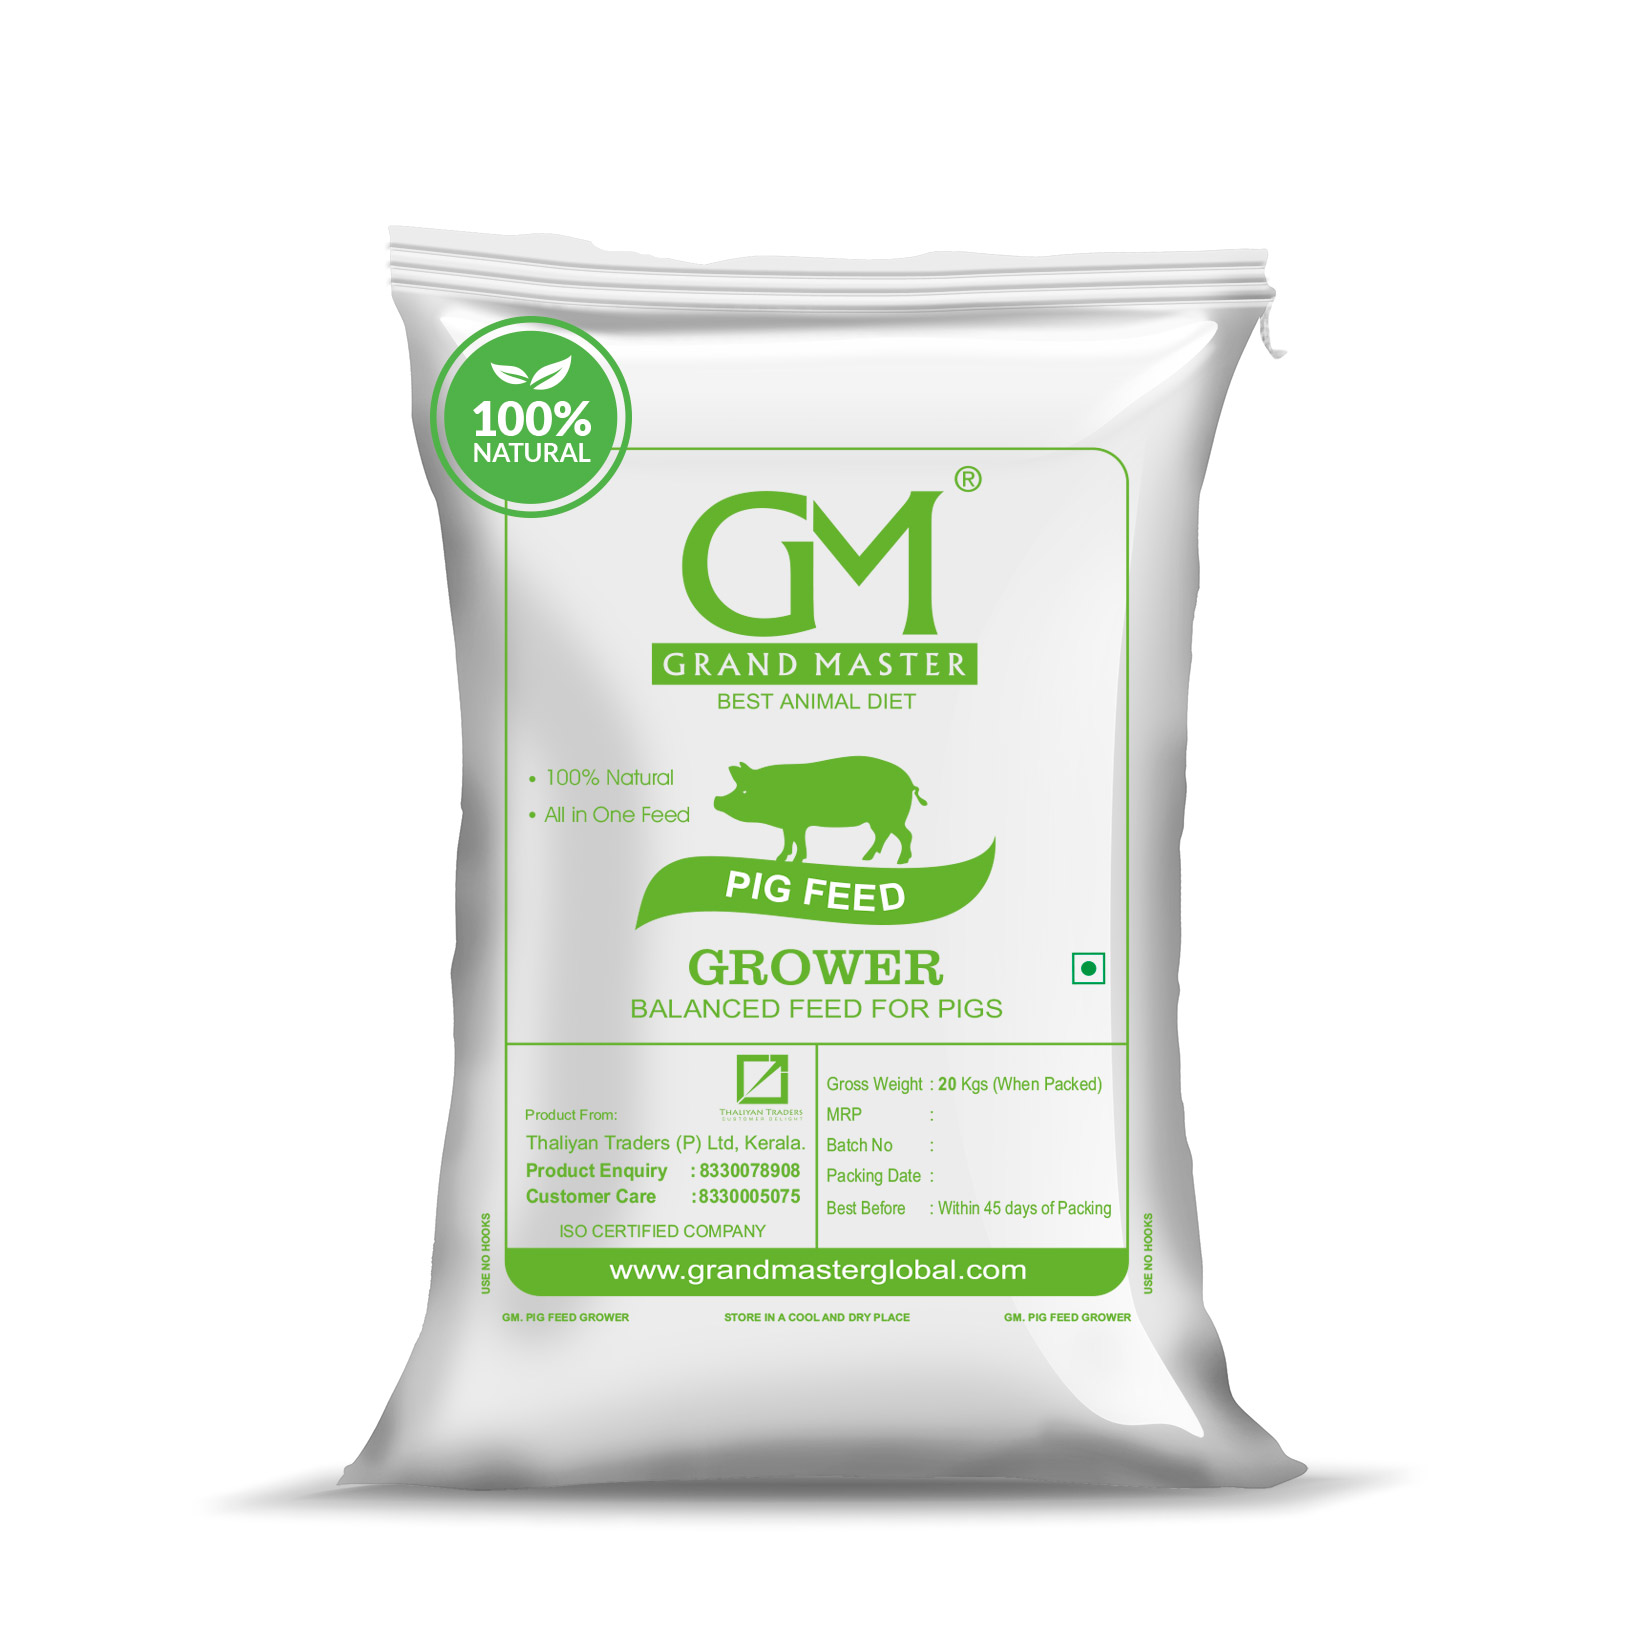 Grower and finisher feed for pig